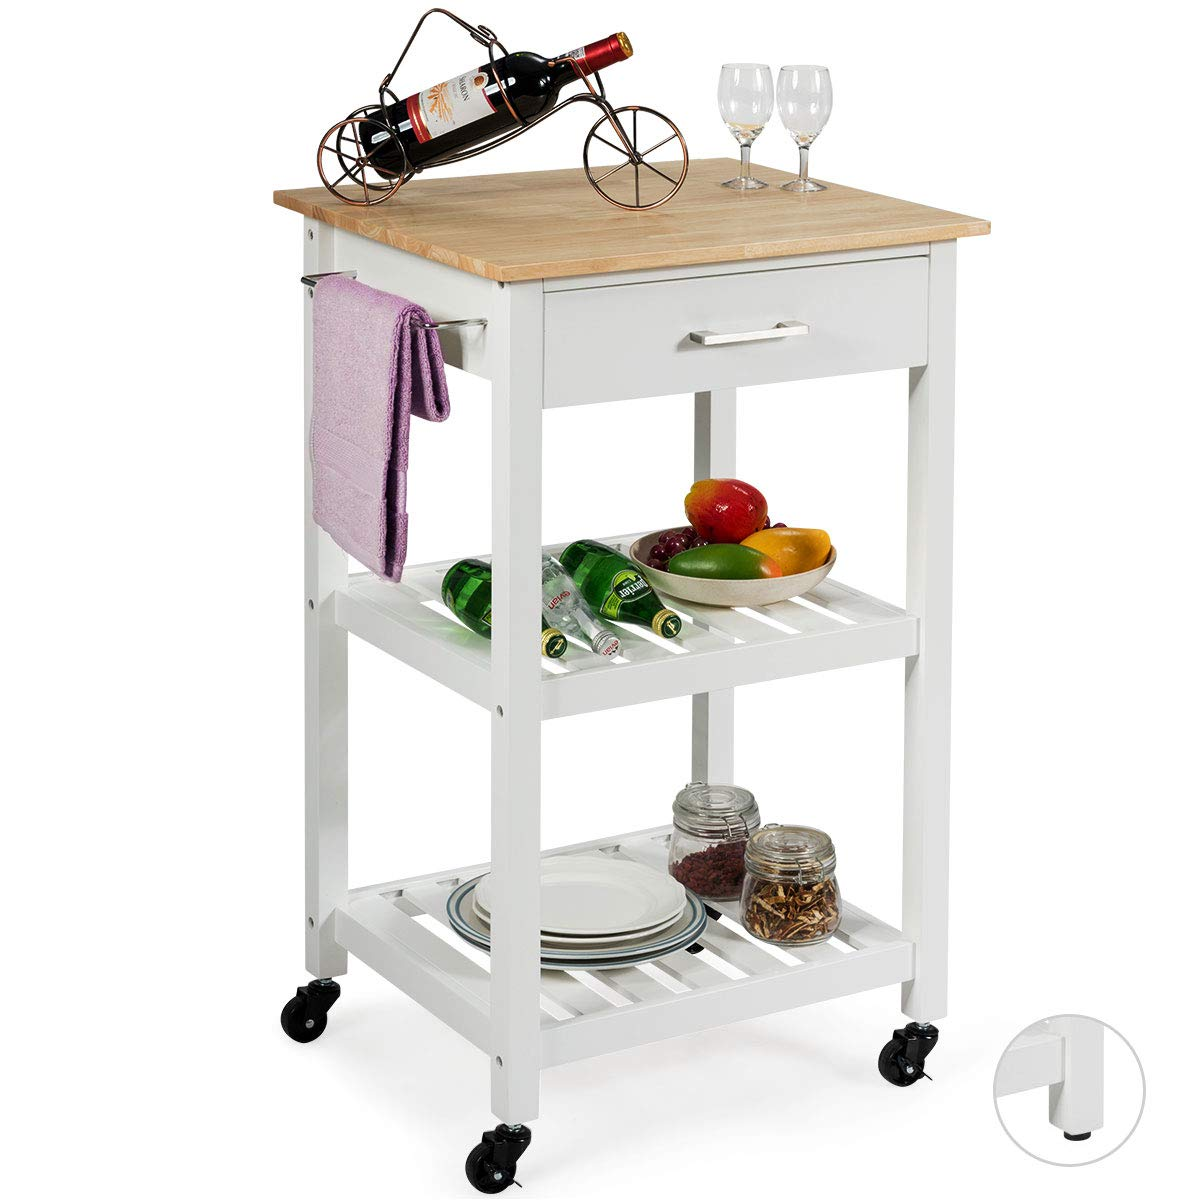 Giantex Kitchen Island Cart Multifunction Rolling Trolley Small Wood Cart with Drawer, 2 Shelves, Towel Rack White